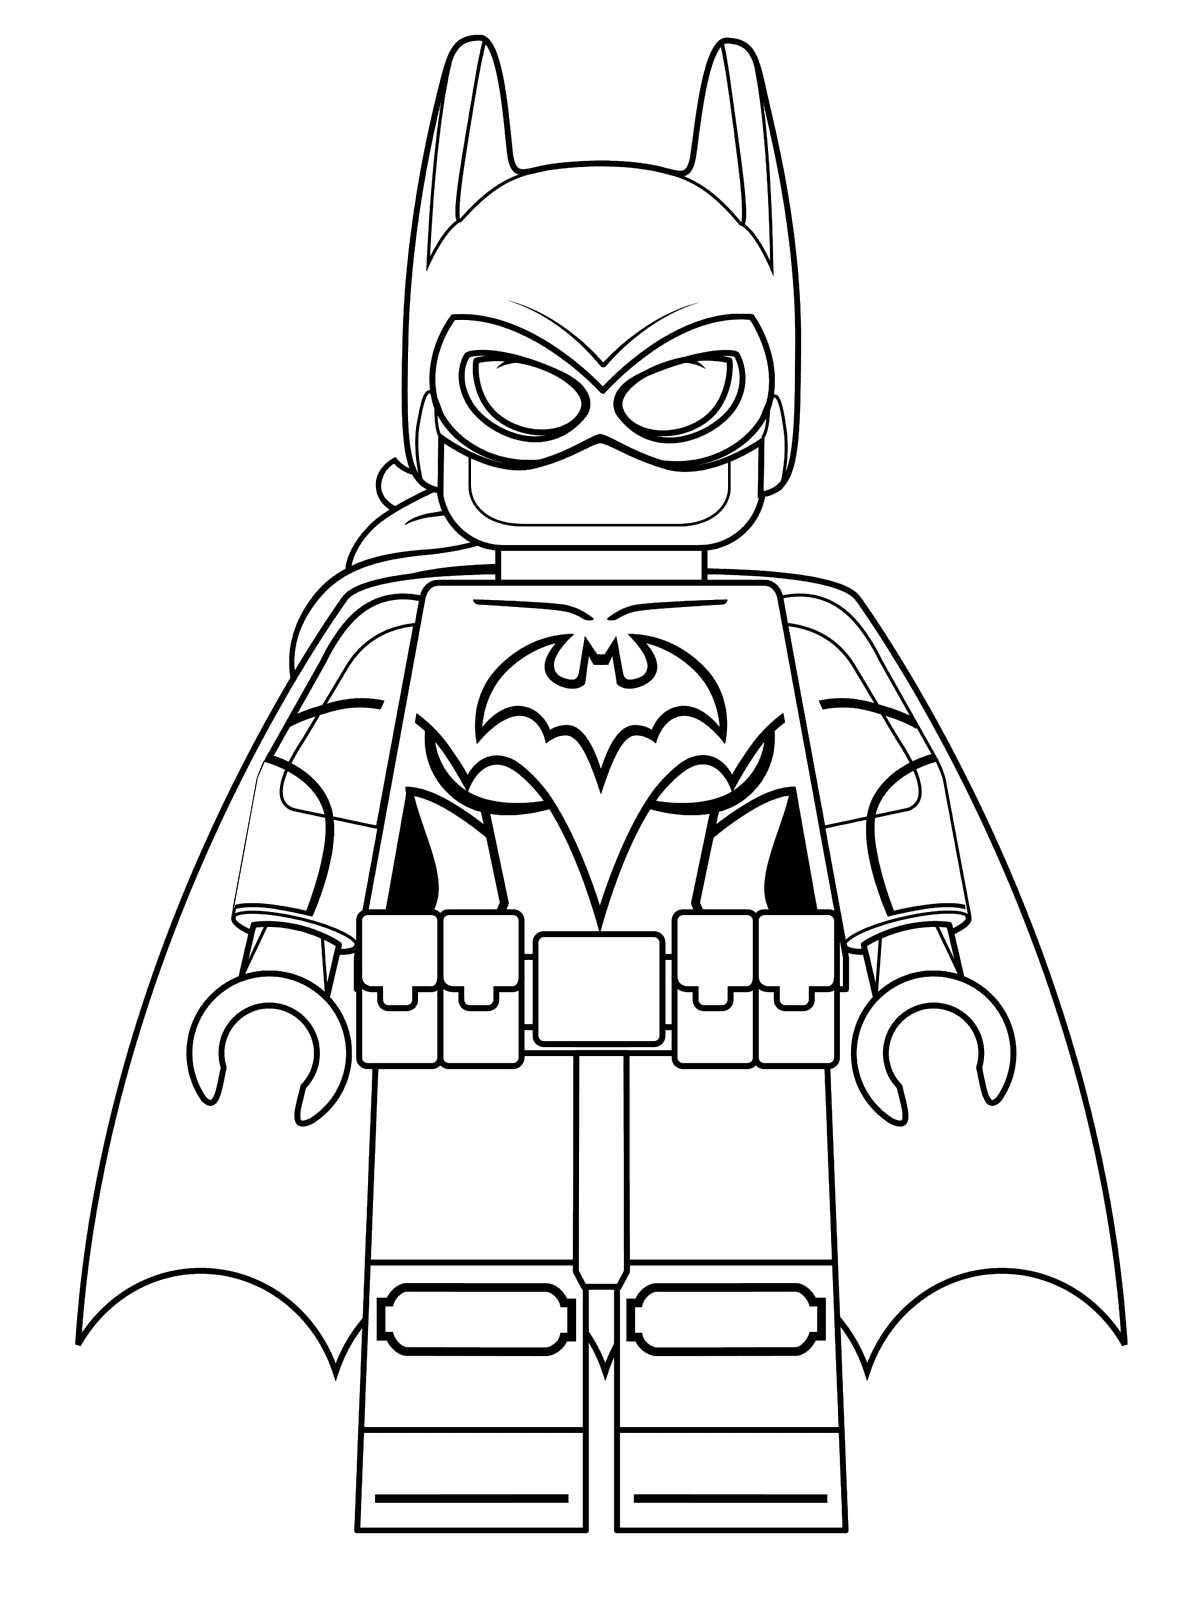 lego batman coloring pages best coloring pages for kids. Black Bedroom Furniture Sets. Home Design Ideas